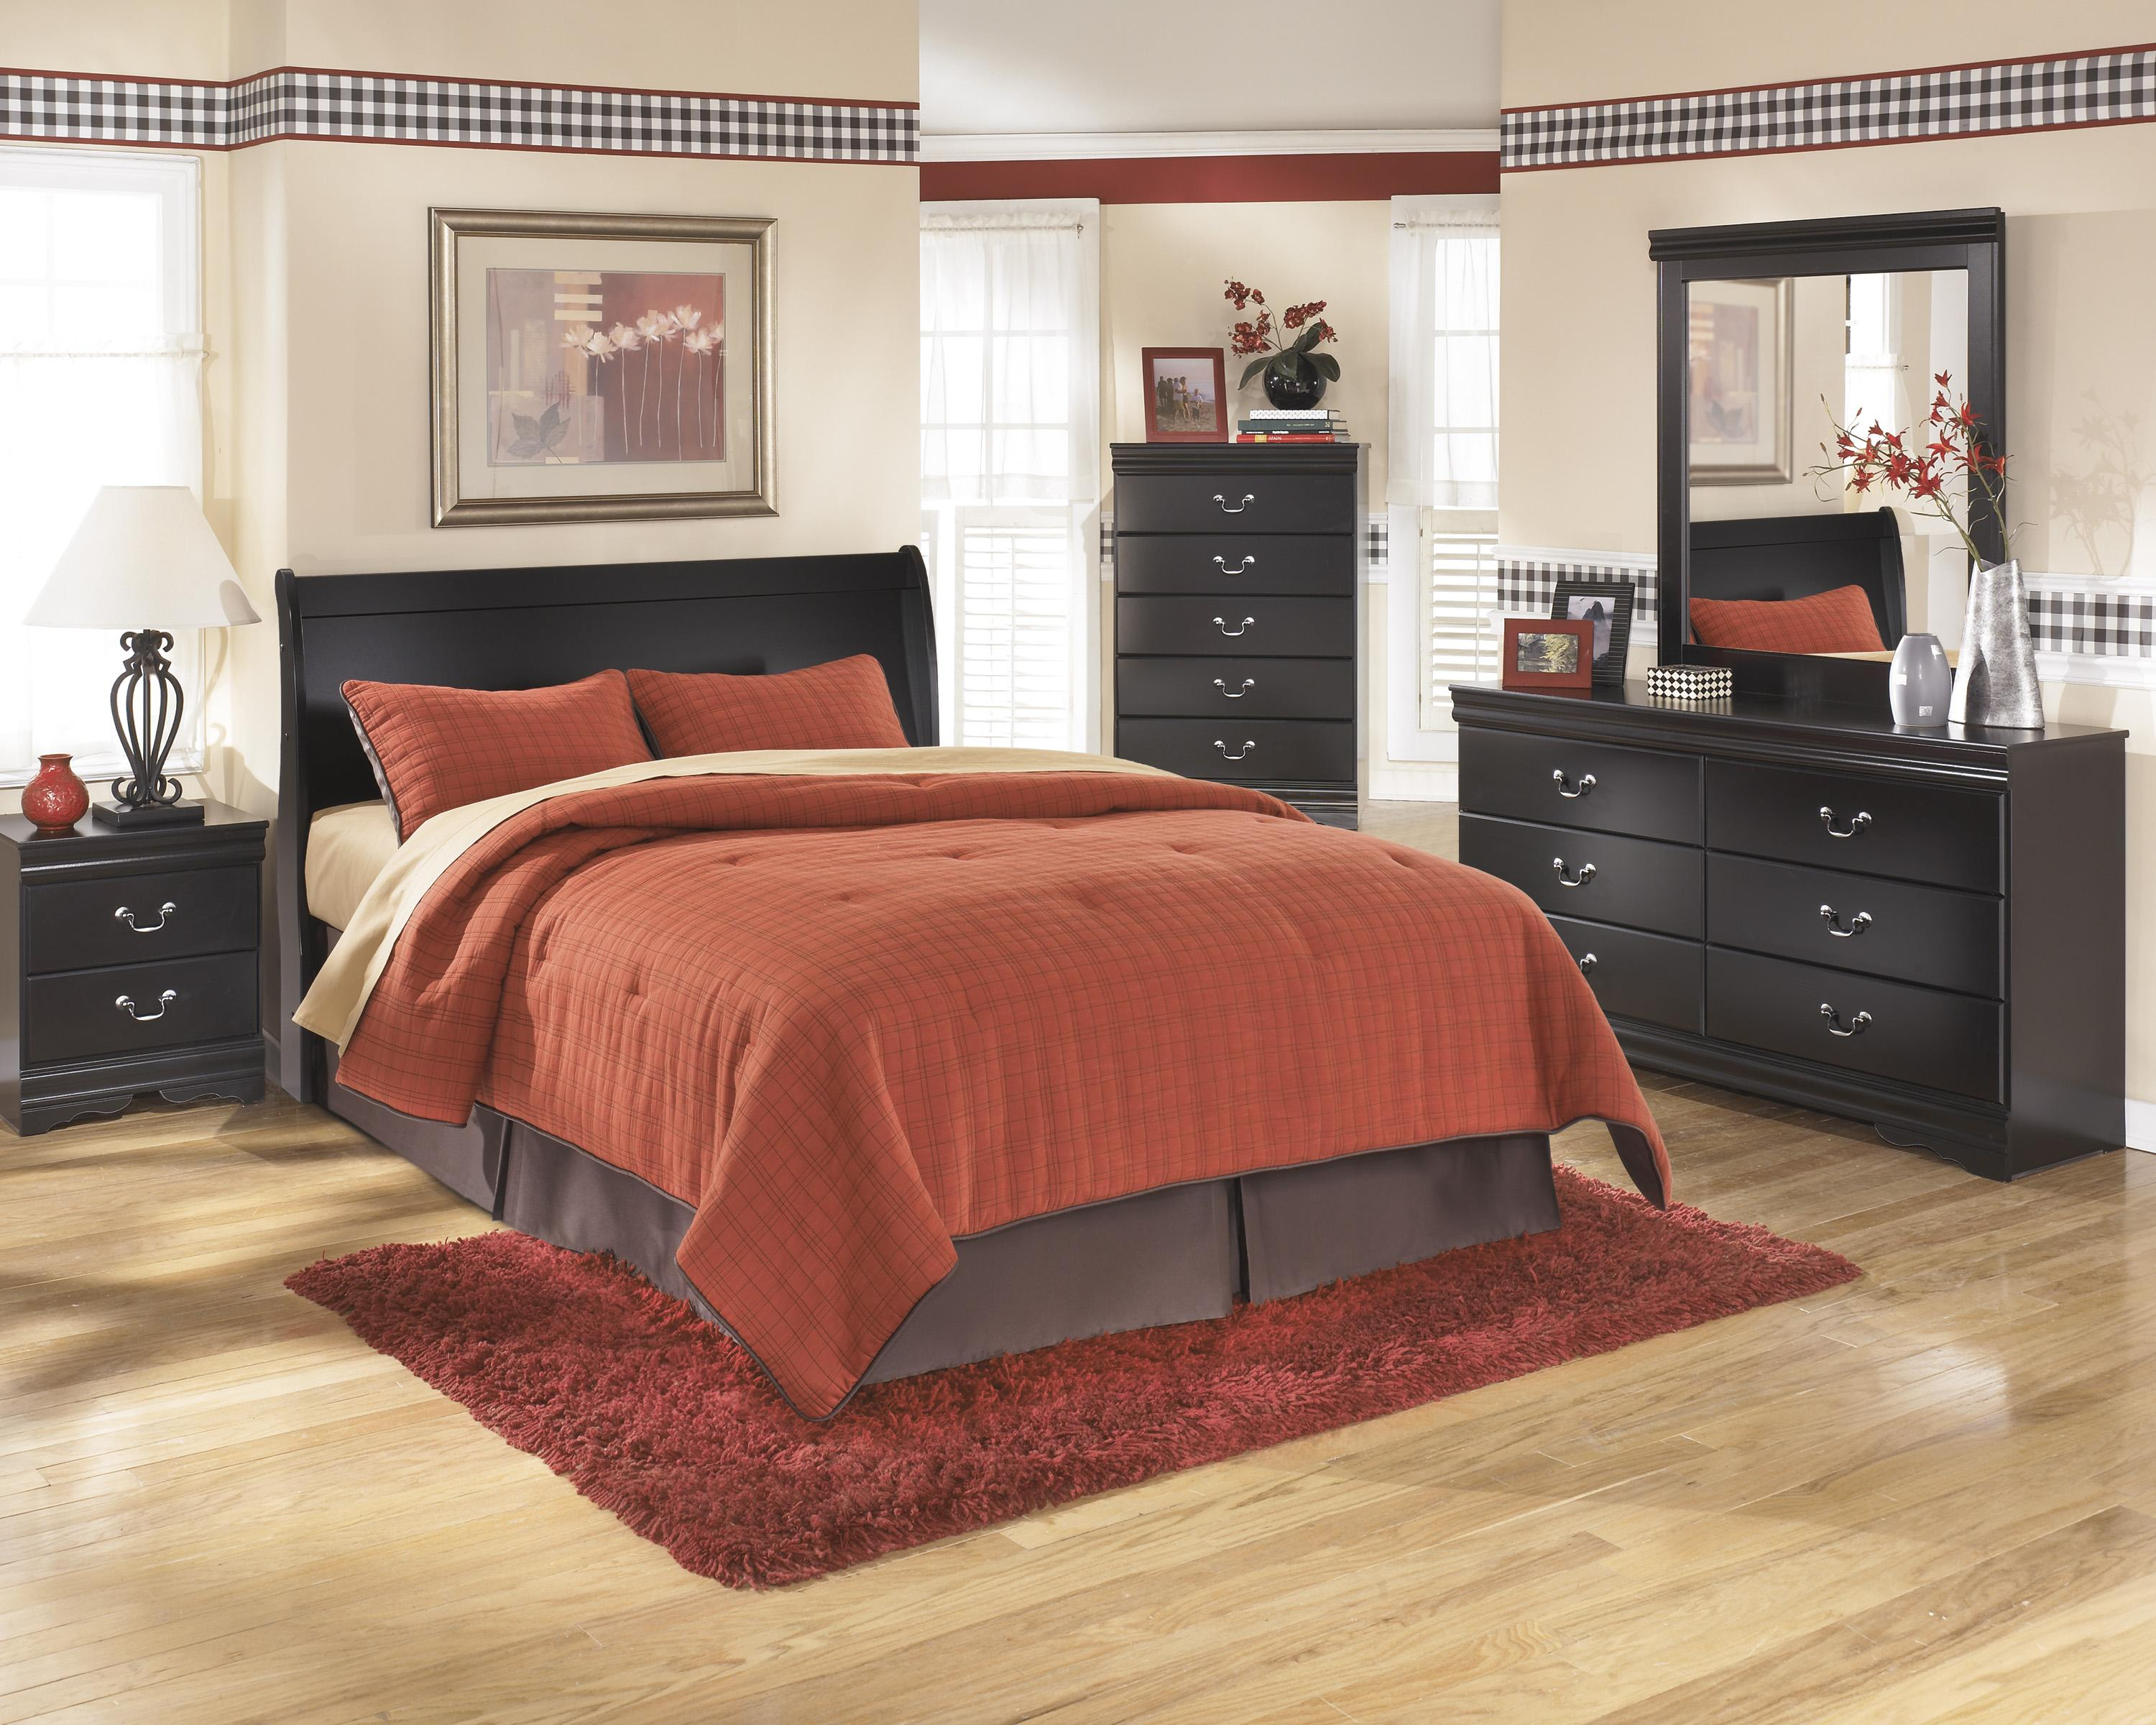 Signature Design by Ashley Huey Vineyard King Bedroom Group - Item Number: B128 K Bedroom Group 2